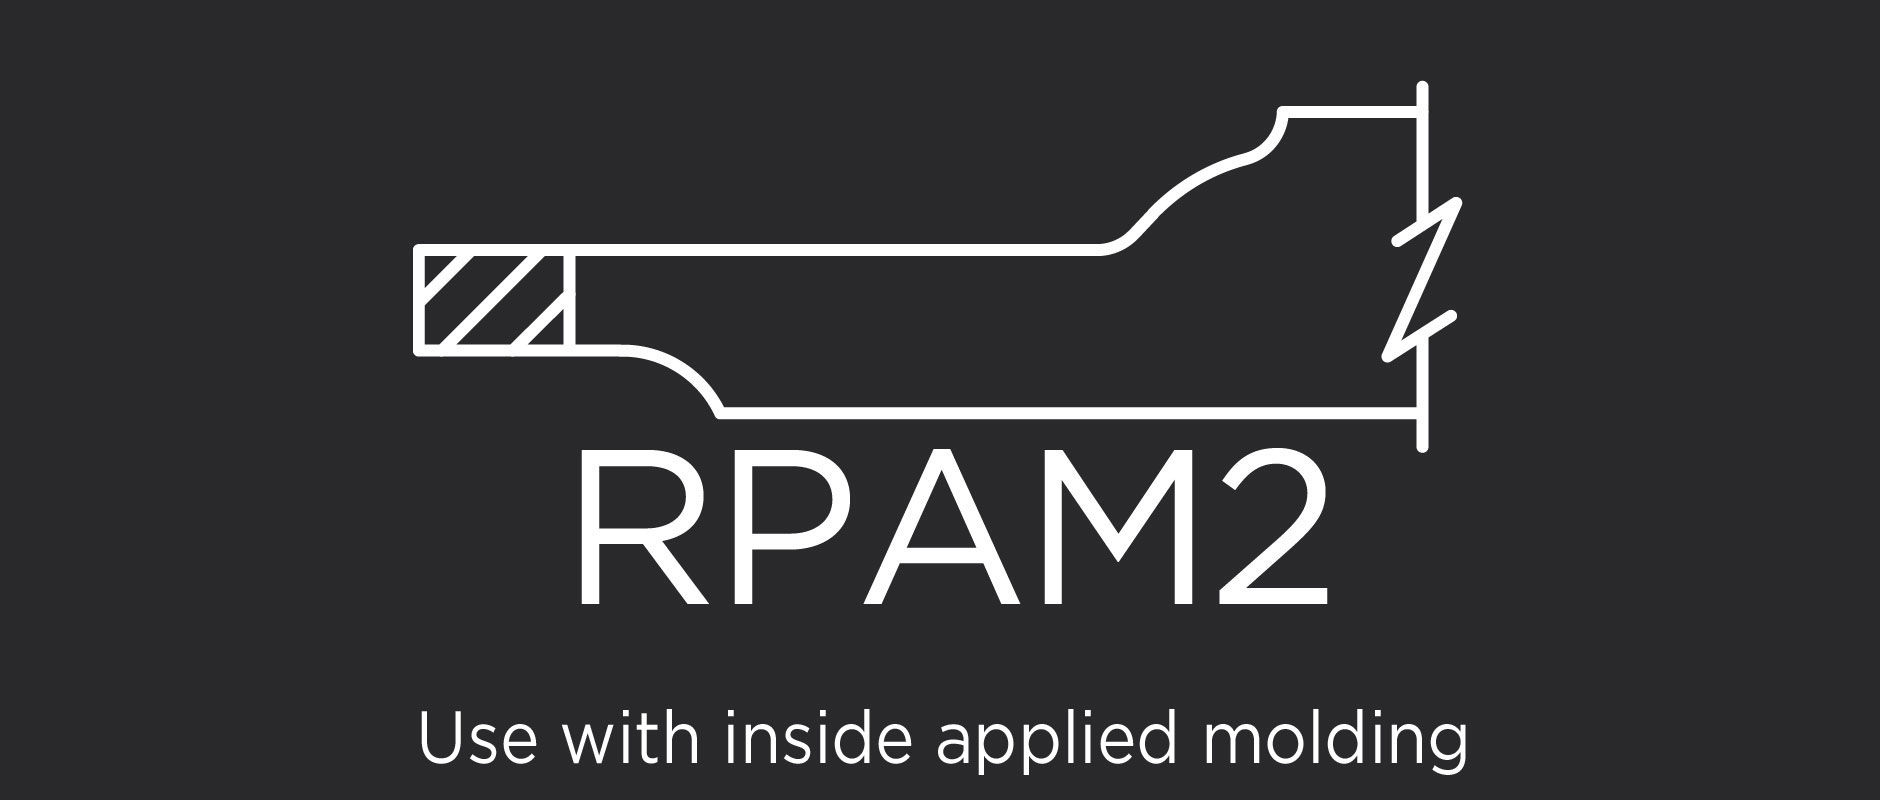 RPAM2 raised panel for applied molding doors